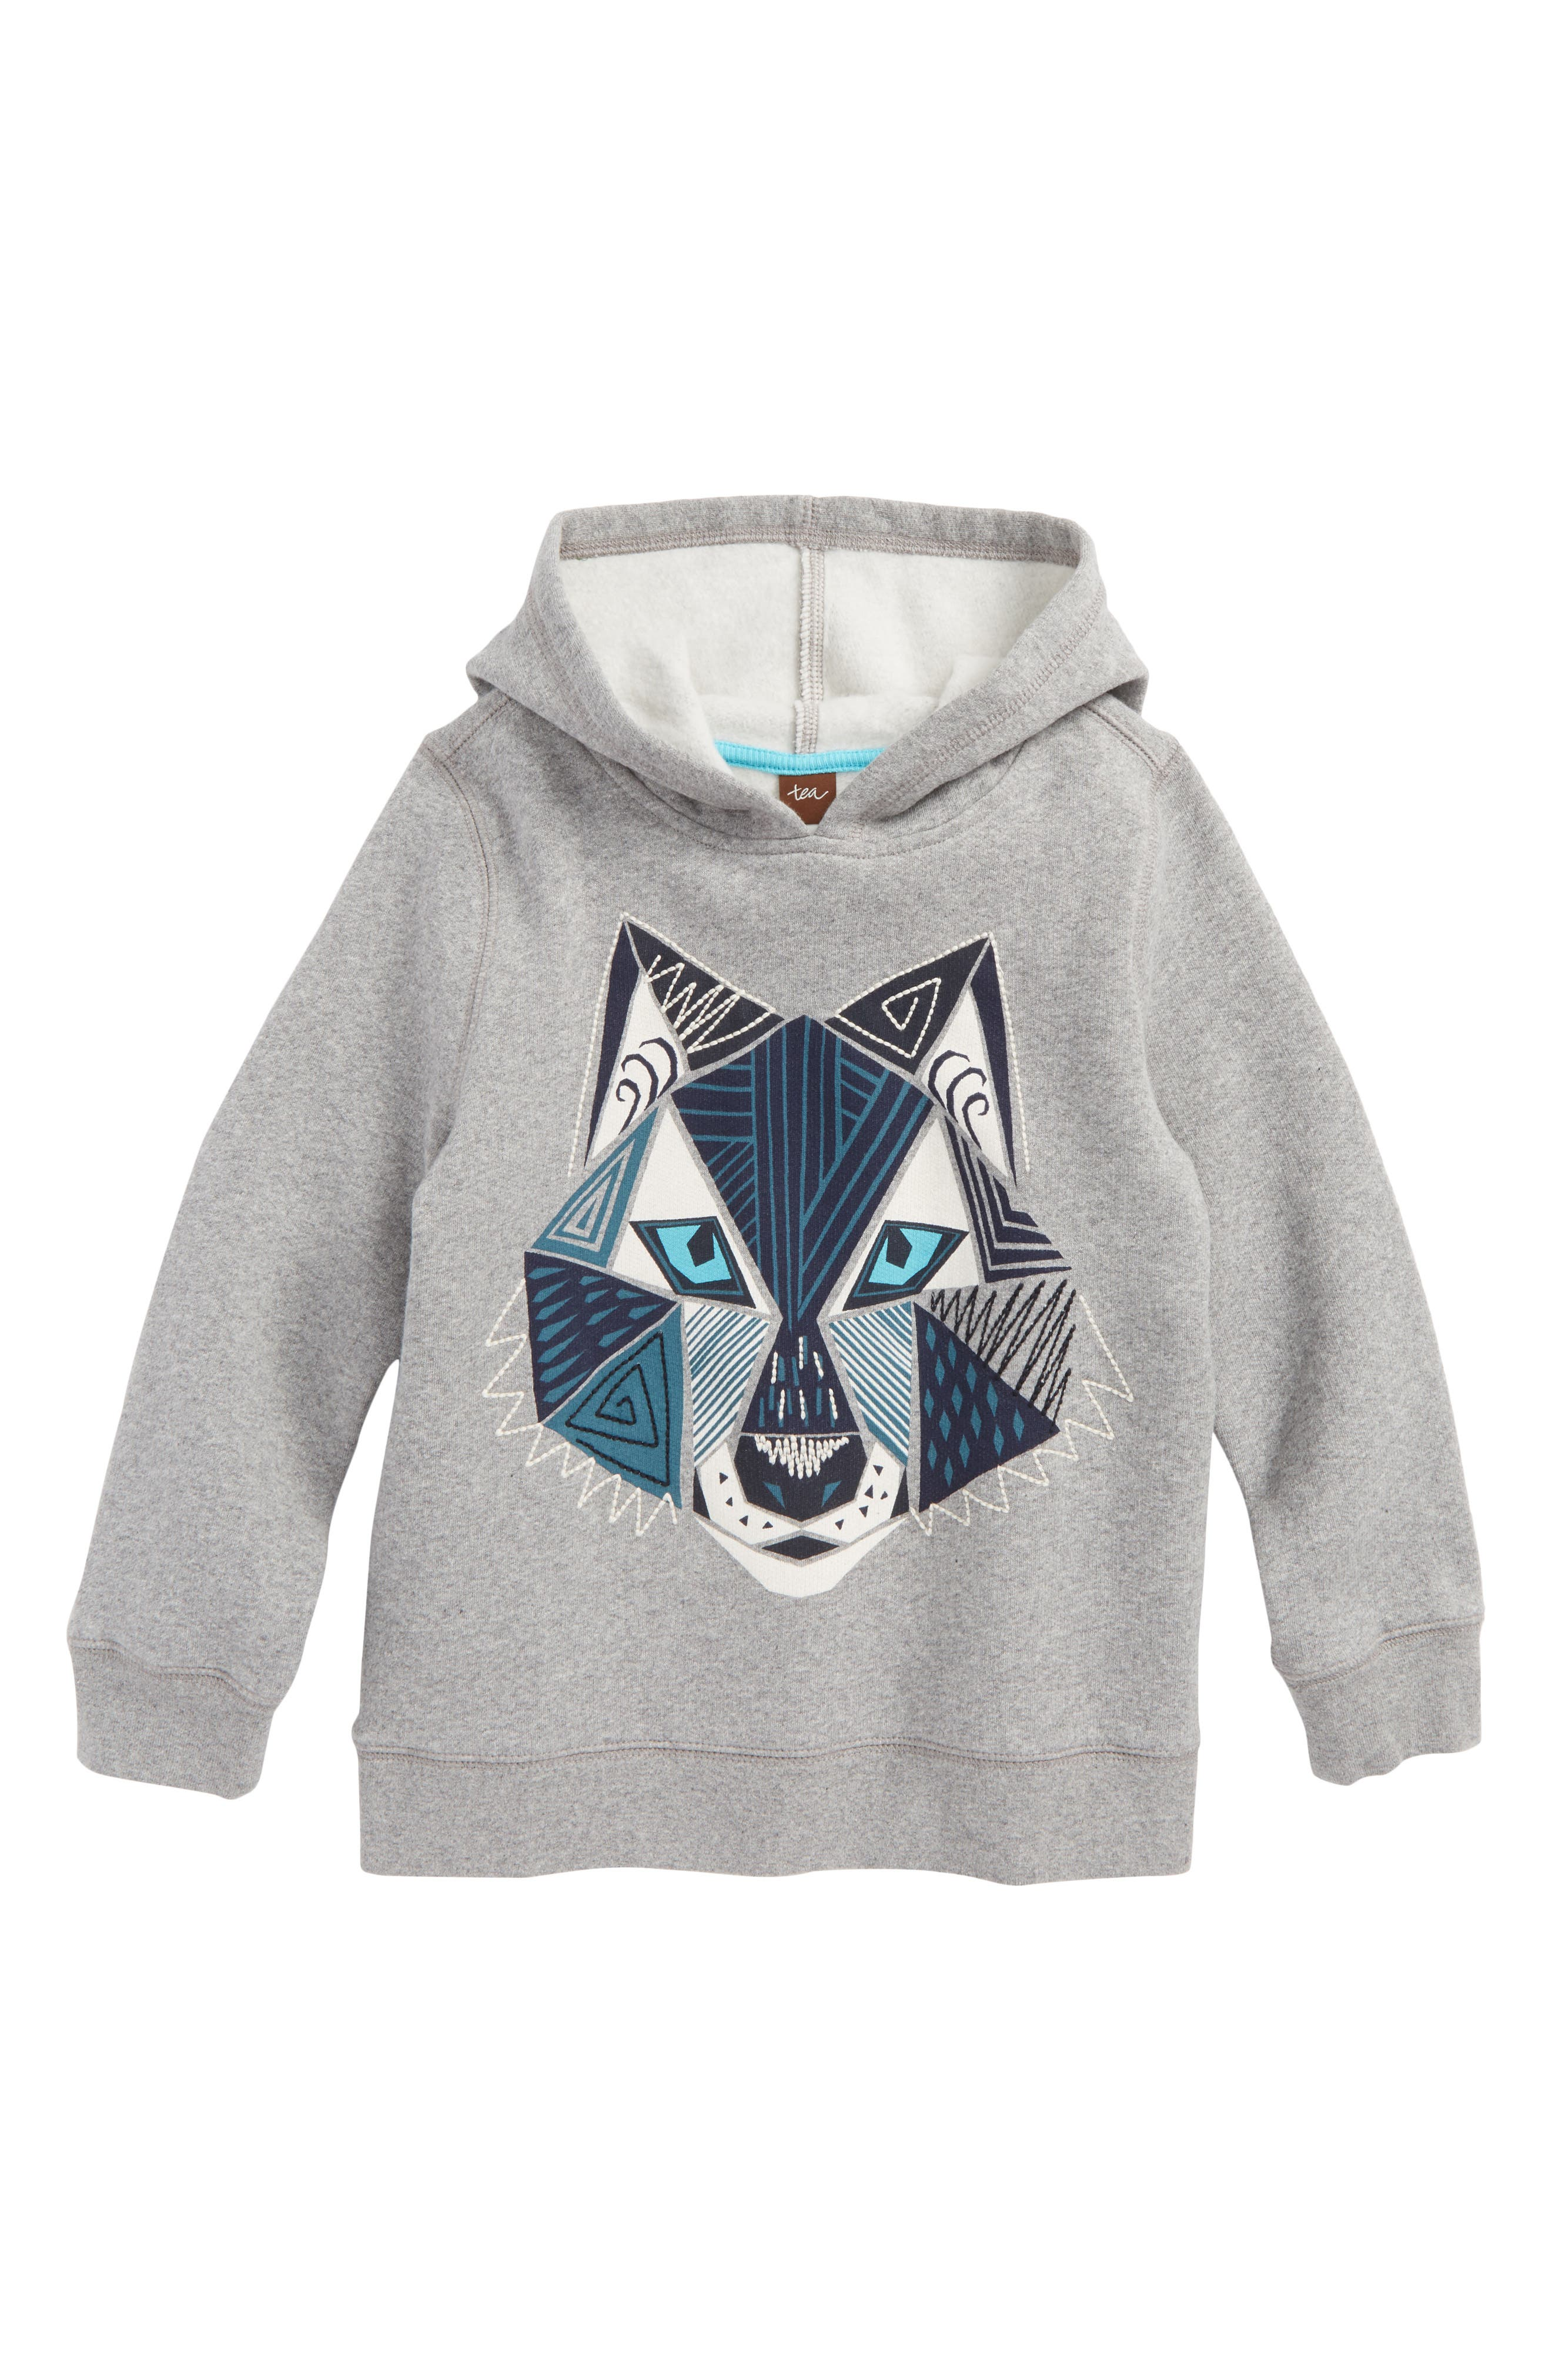 Tea Collection Howler Graphic Hoodie (Toddler Boys & Little Boys)